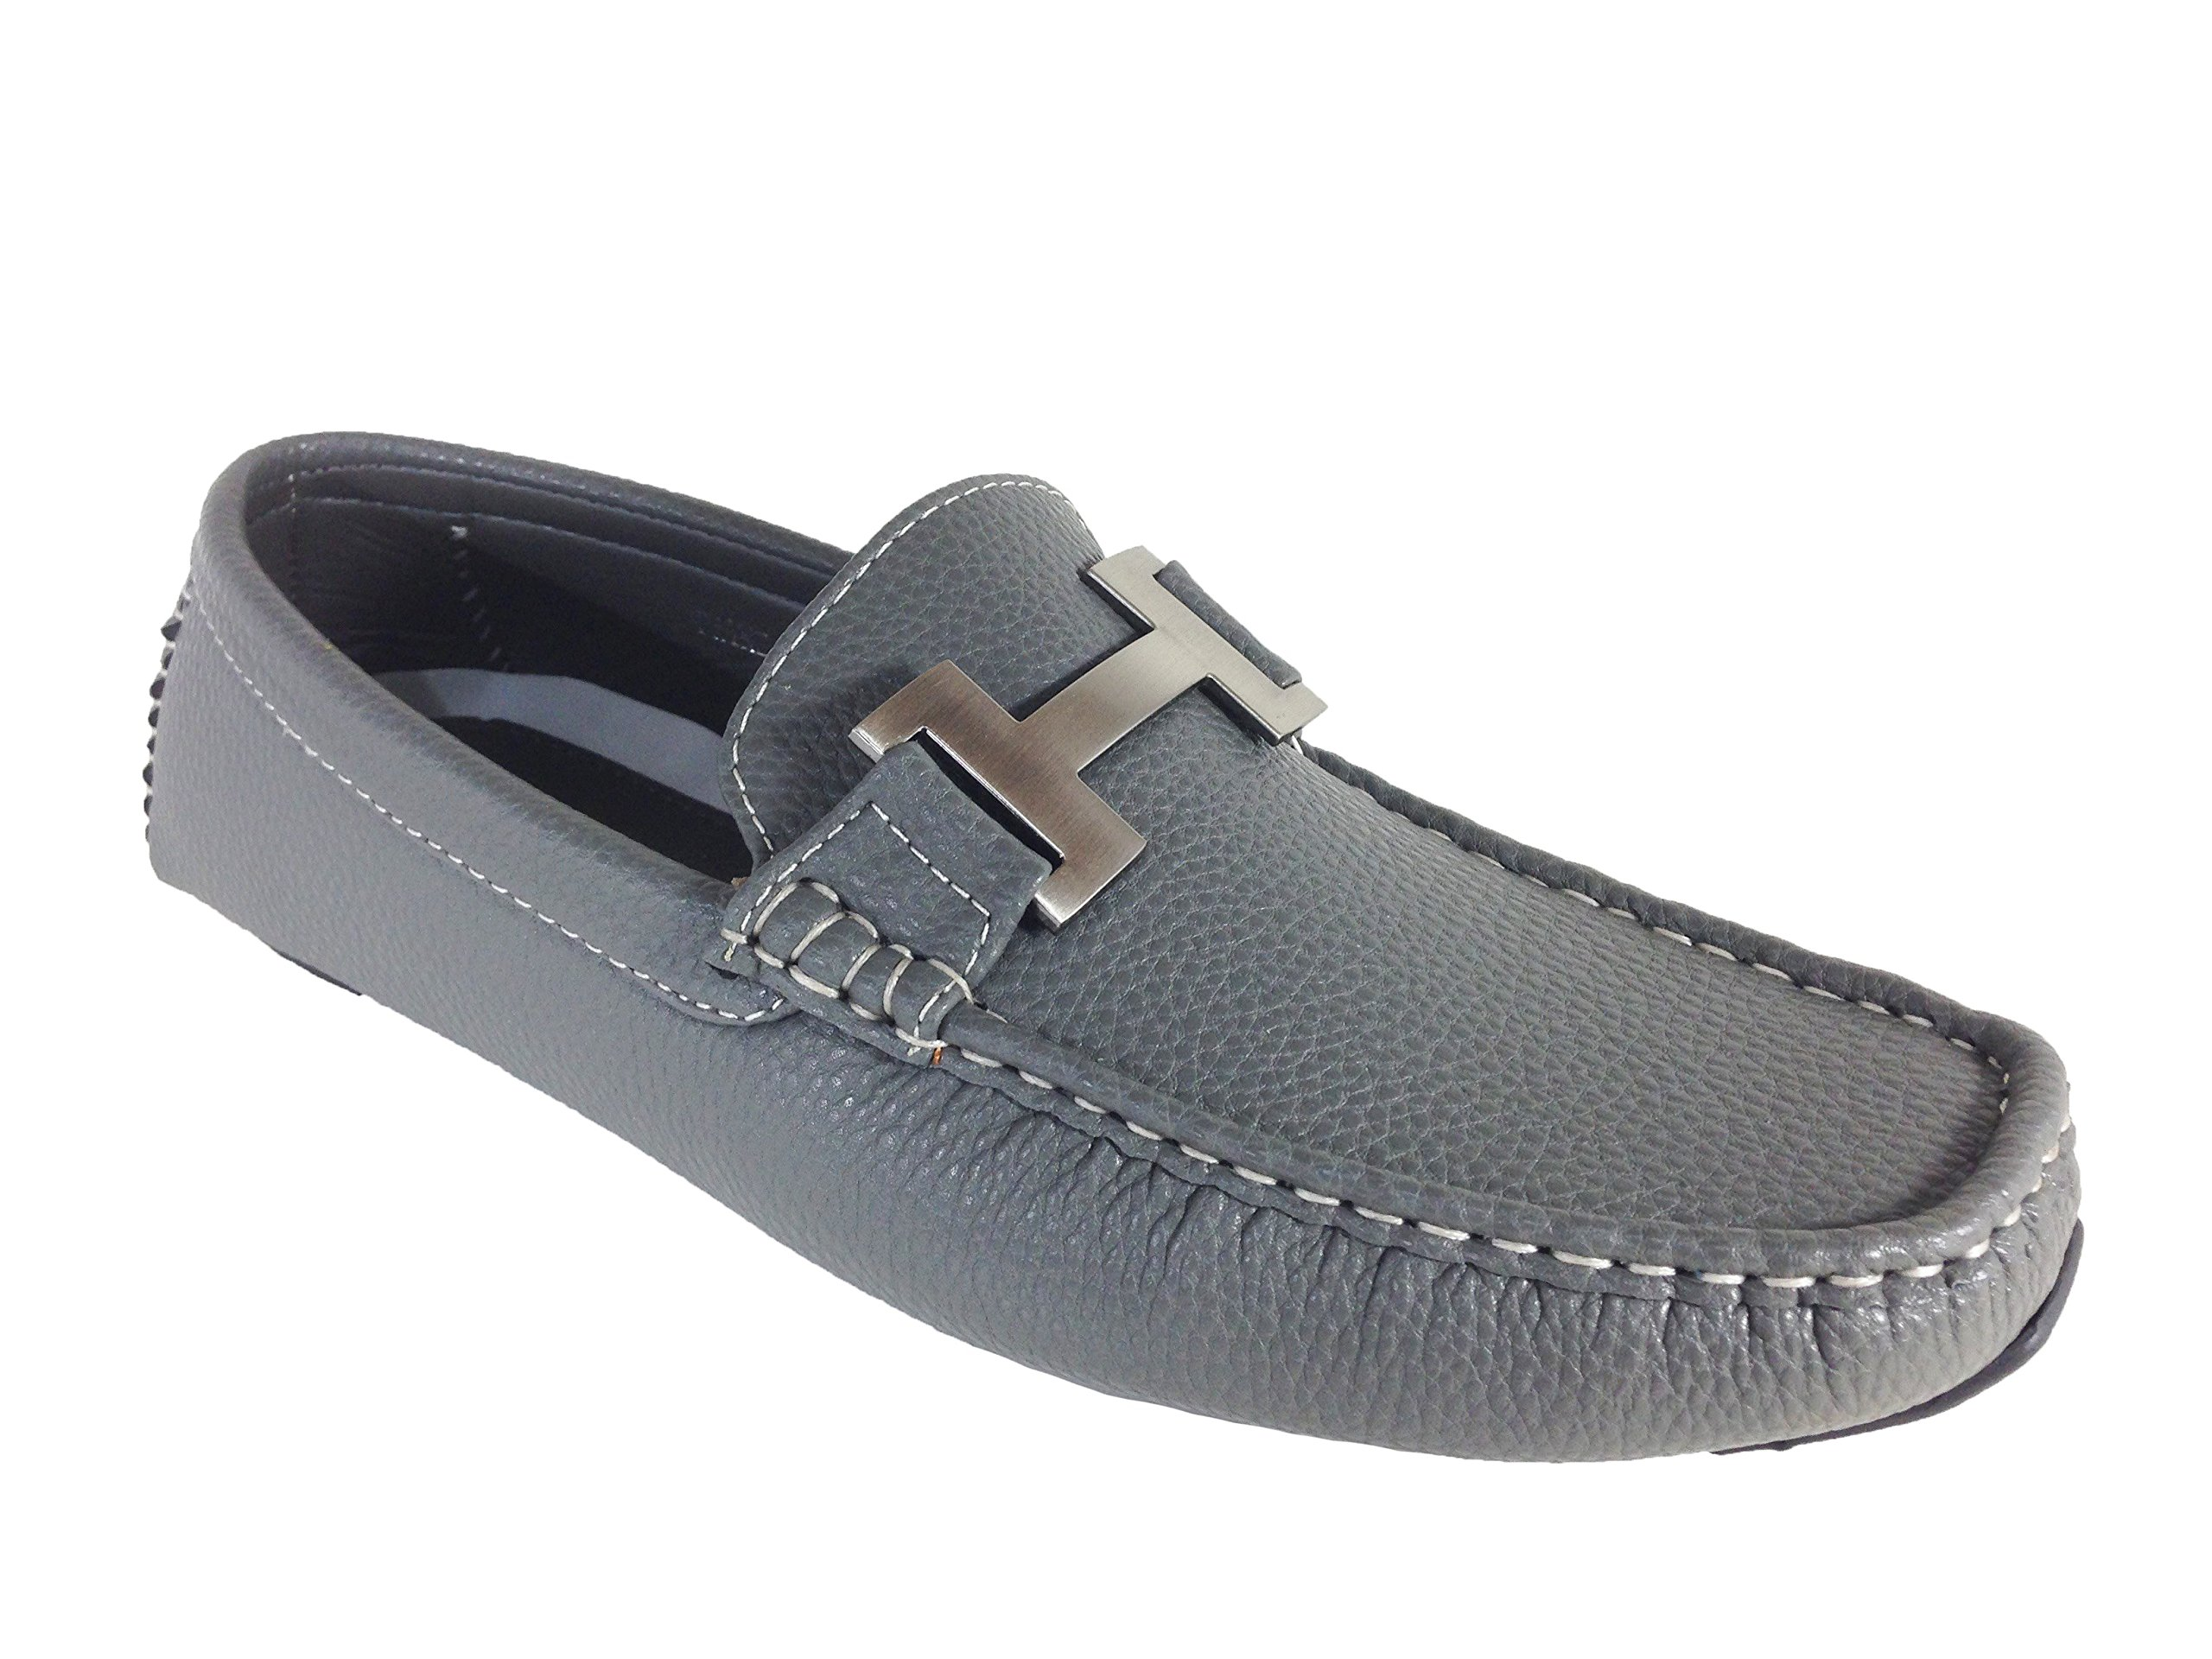 Enzo Romeo Payne03 Men's Casual Light Weight Driving Moccasins Slip On Loafer Shoes (12, Gray)